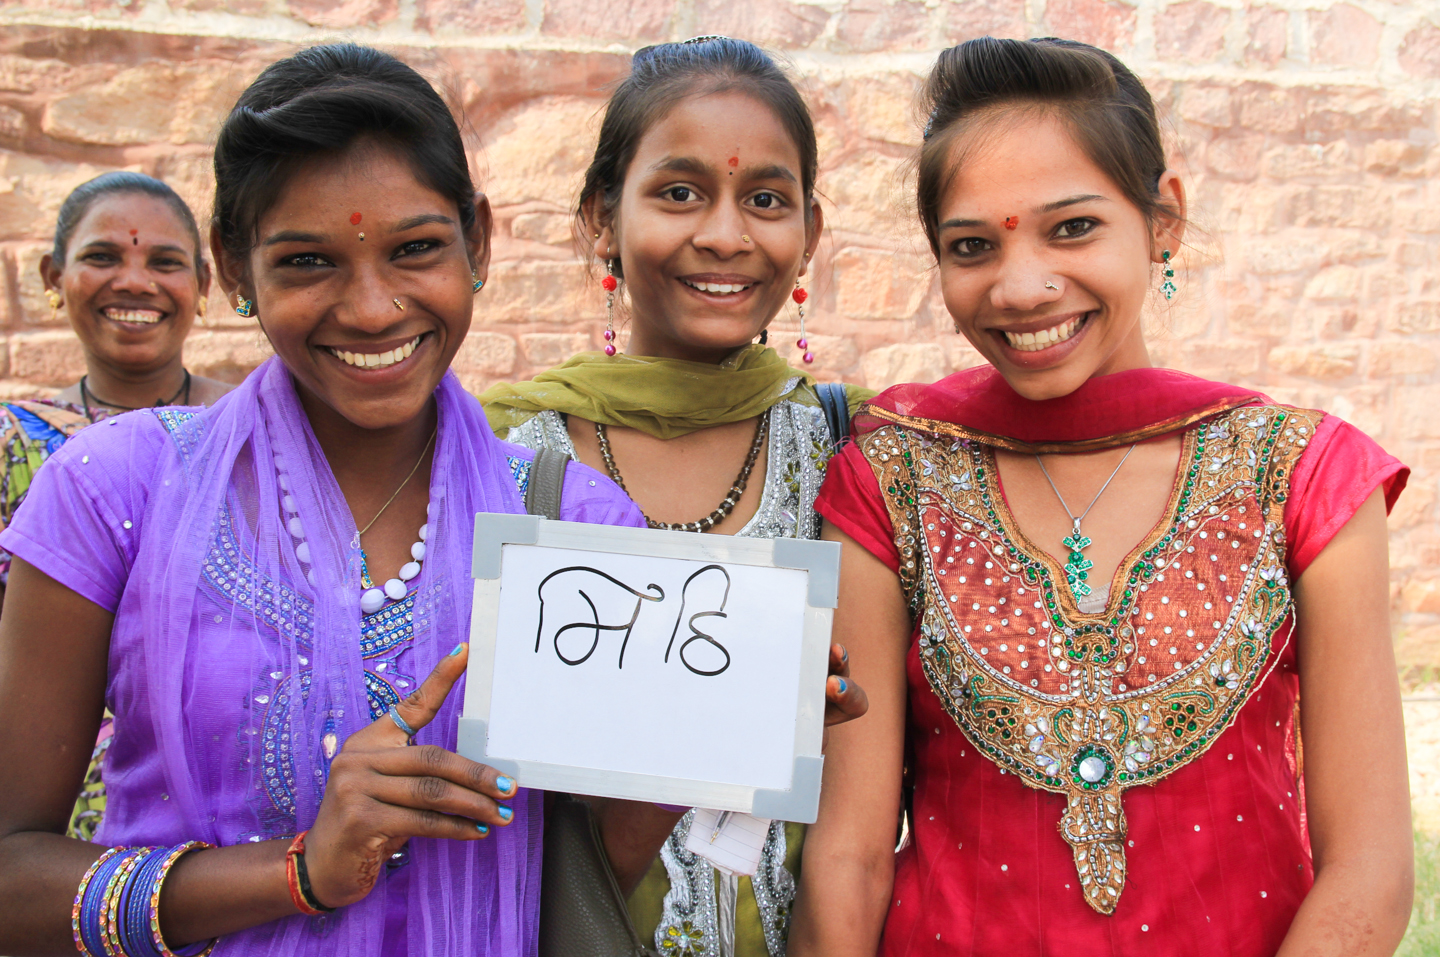 Sangita, Sonal and Sheetal, sisters from Gujarat visiting Jodhpur, love their chai extra sweet.